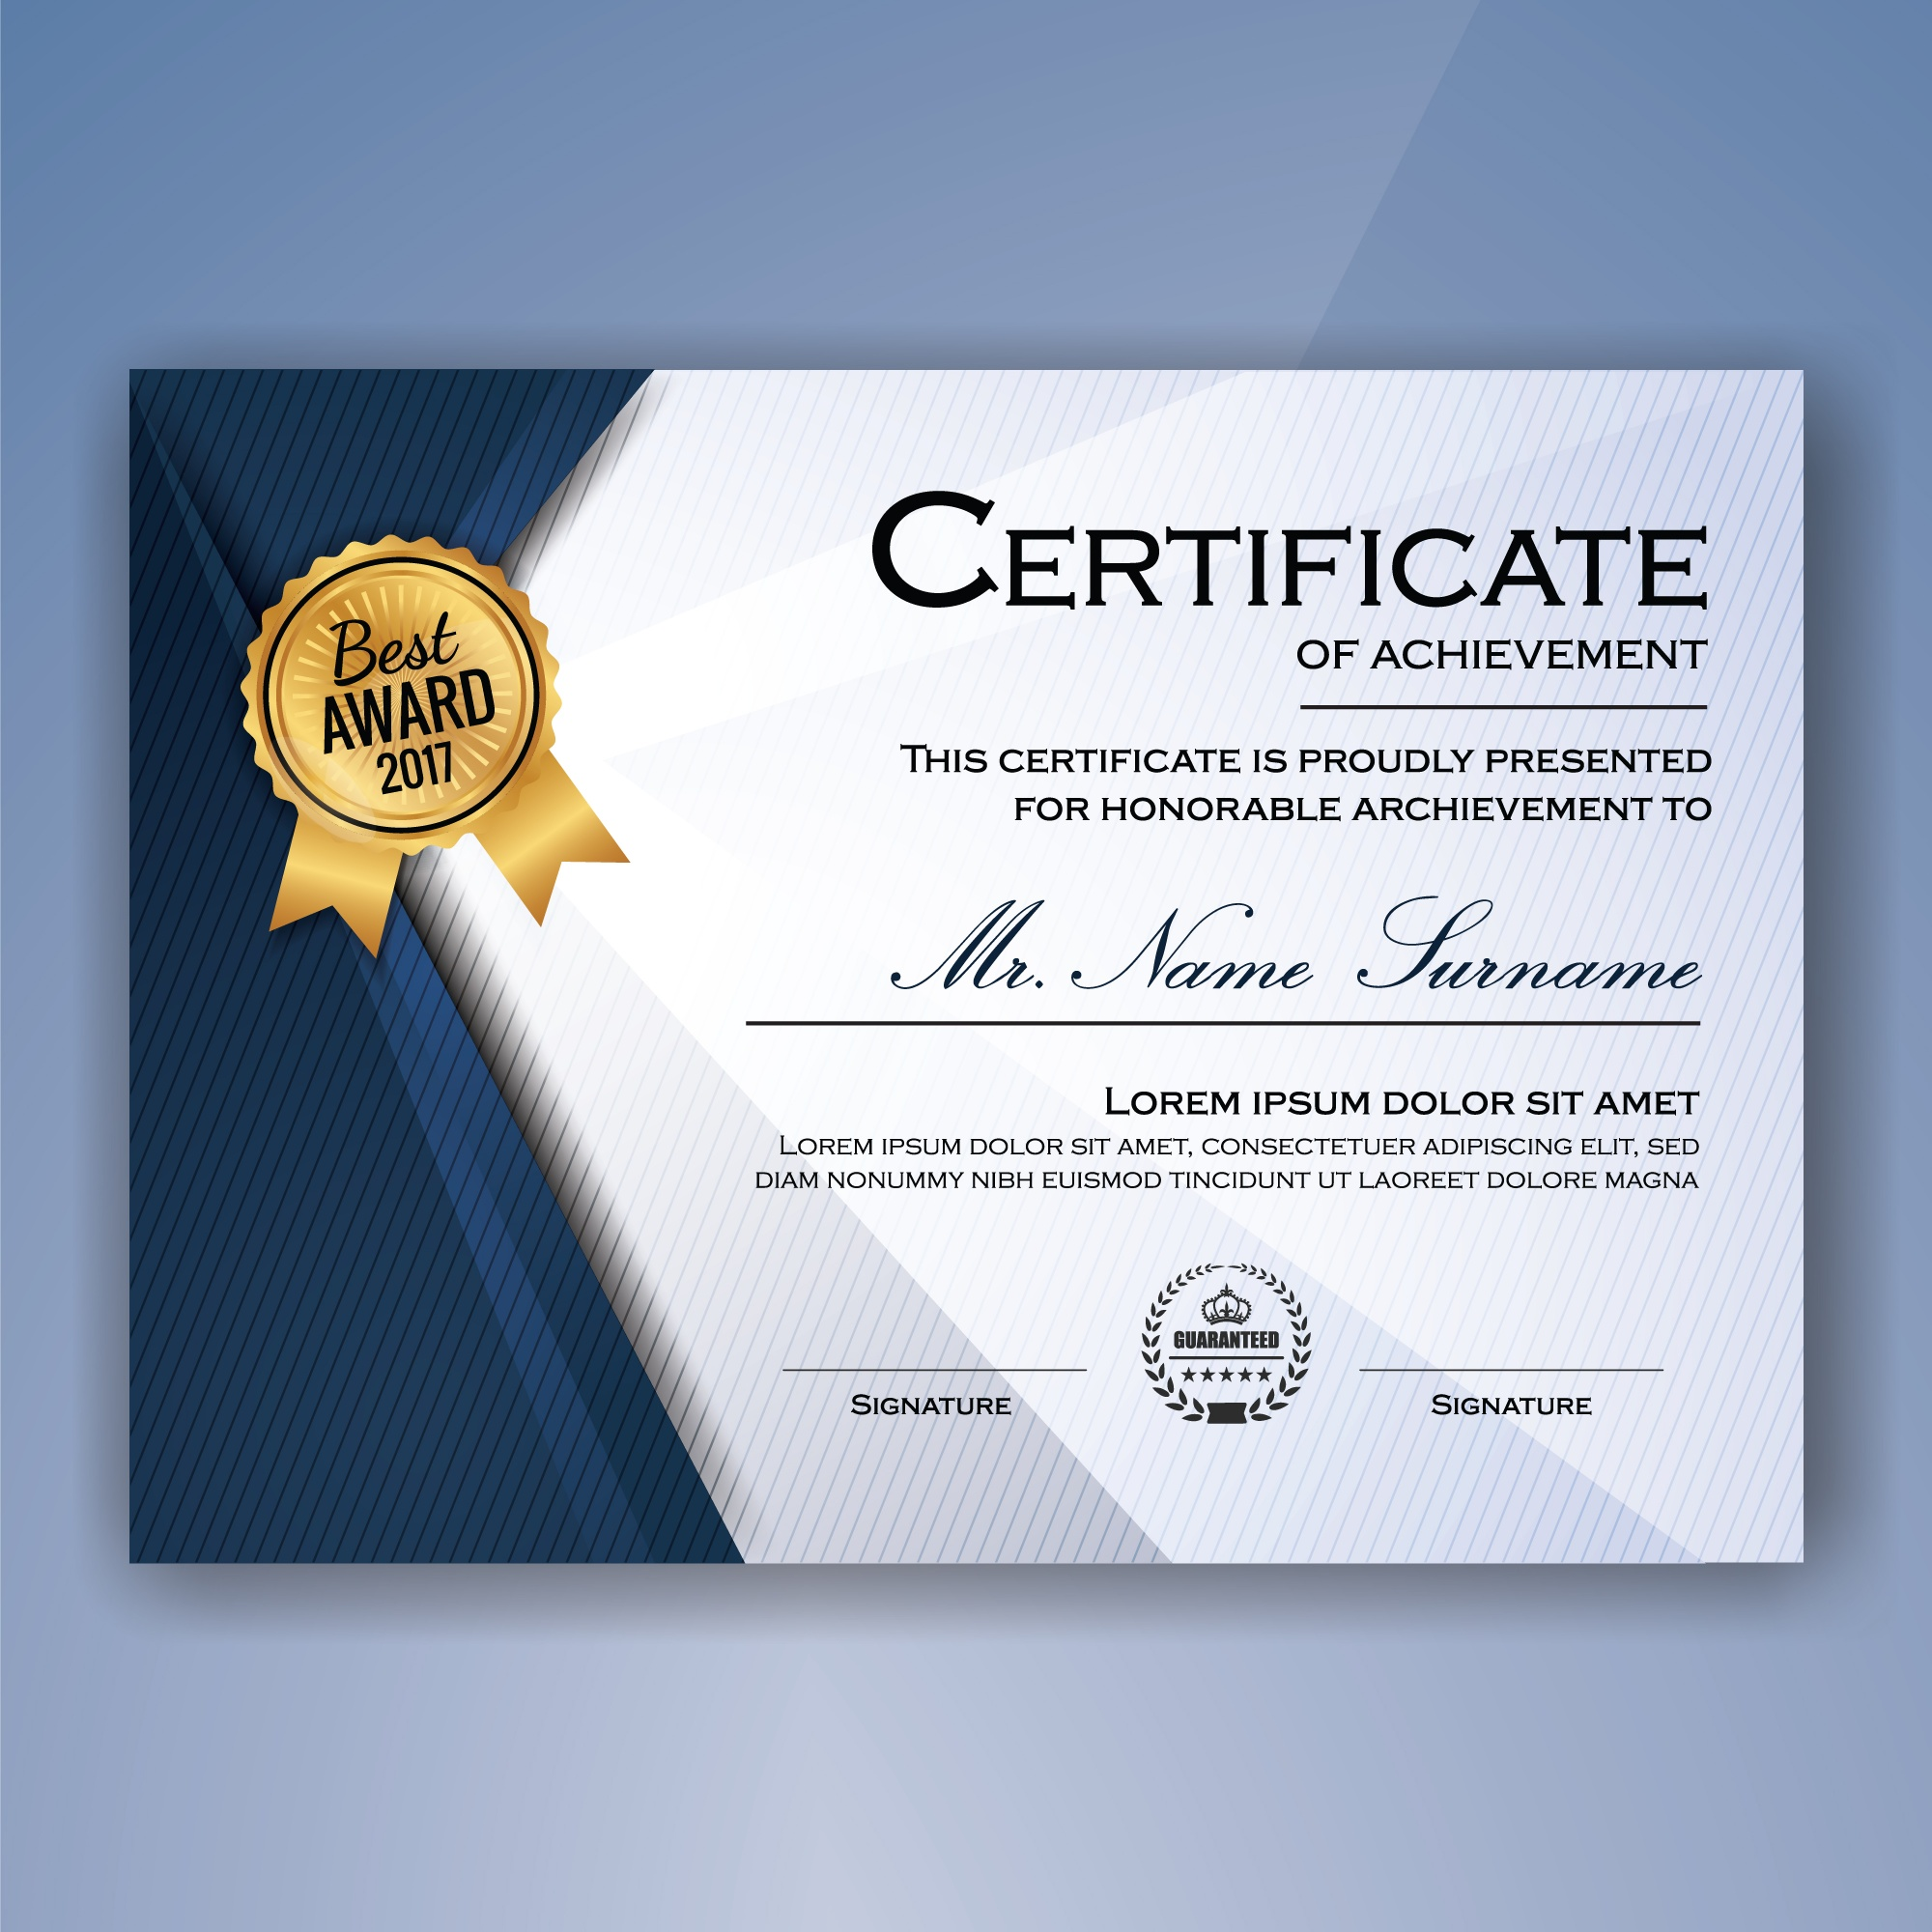 Blue and white elegant certificate of achievement template background